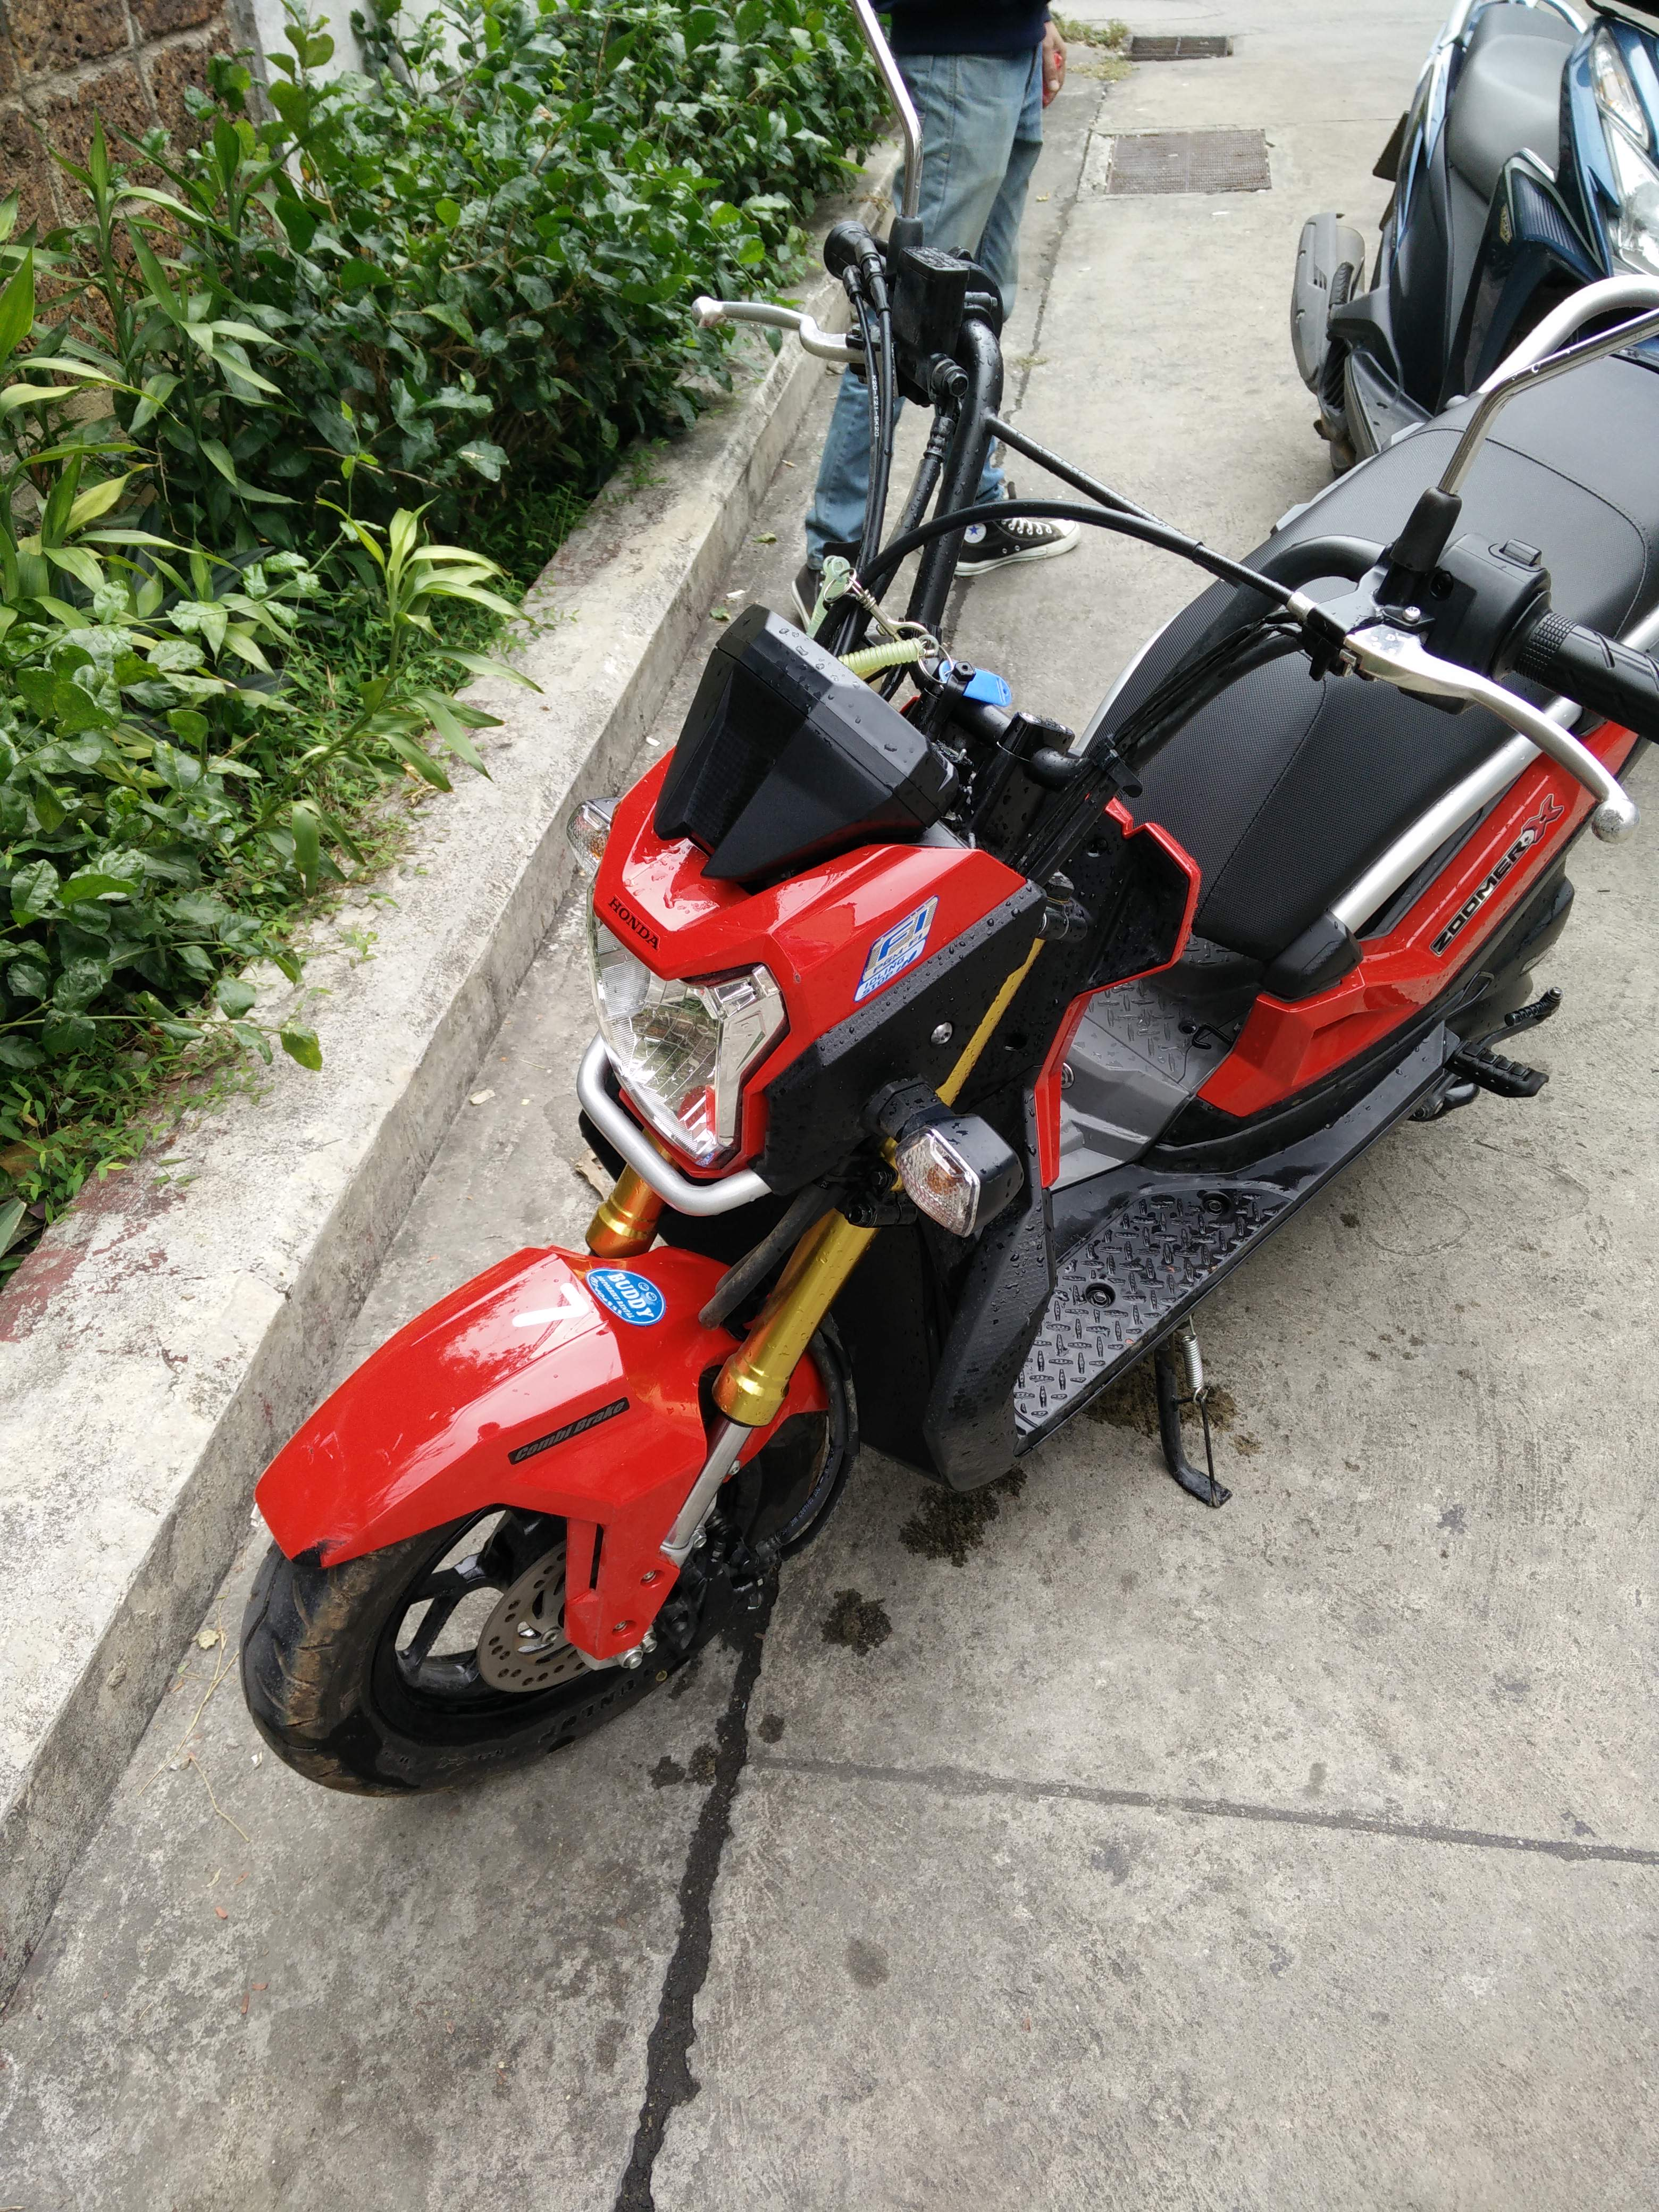 Scooter i Thailand